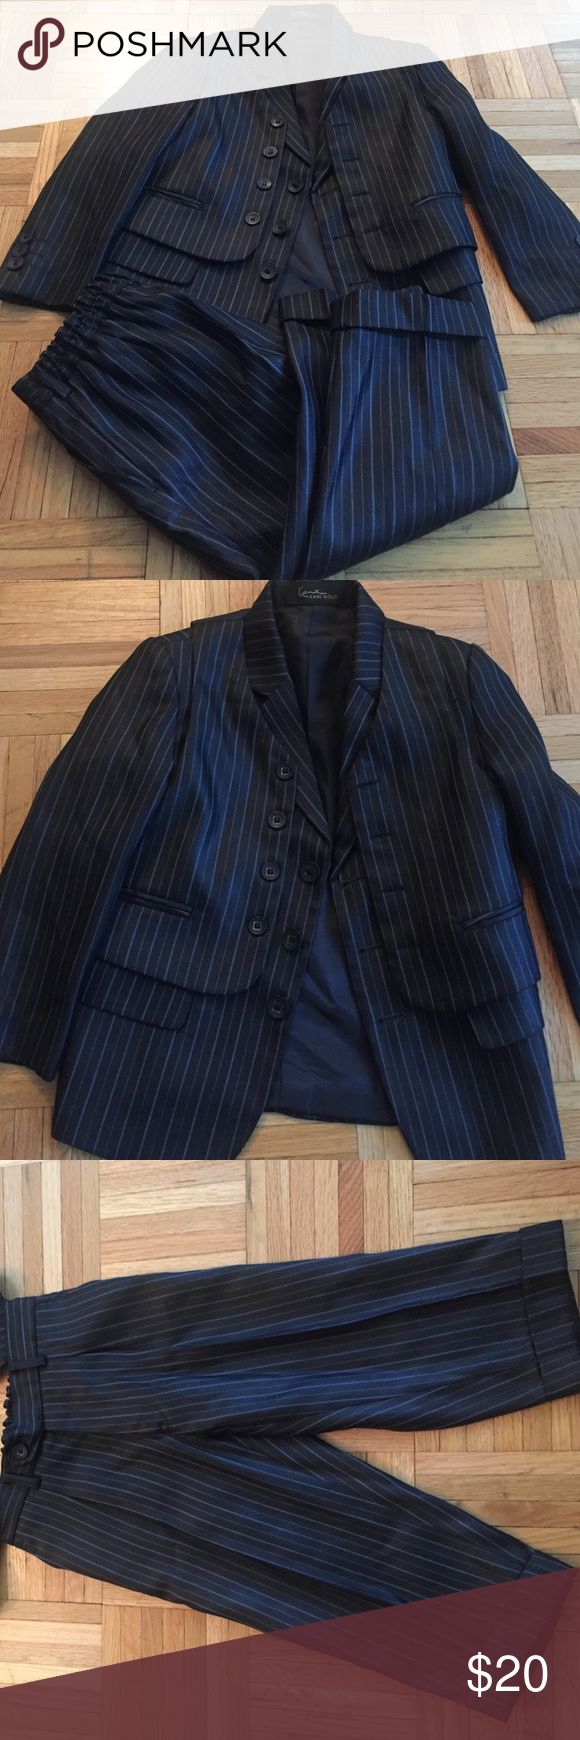 KANI GOLD 3 PCS SUIT Fancy suit. Brand new condition. Lightly worn. kani gold  Matching Sets